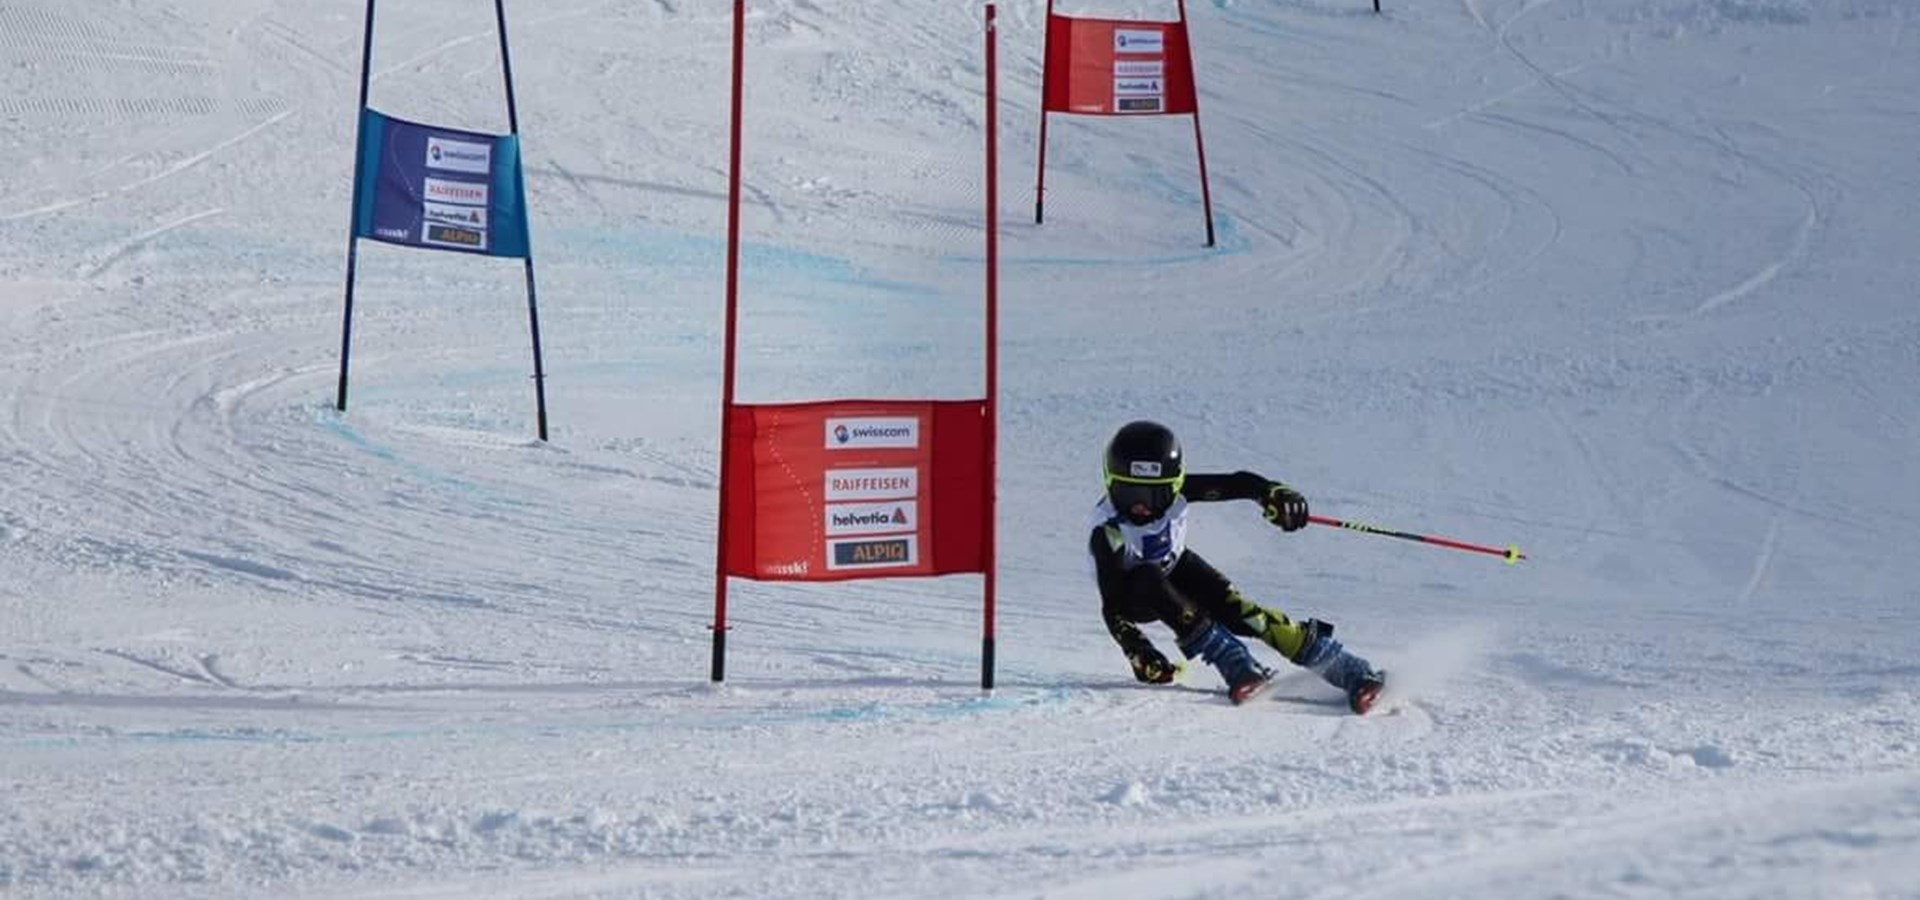 youth ski racer cardrona Jarred Ferguson